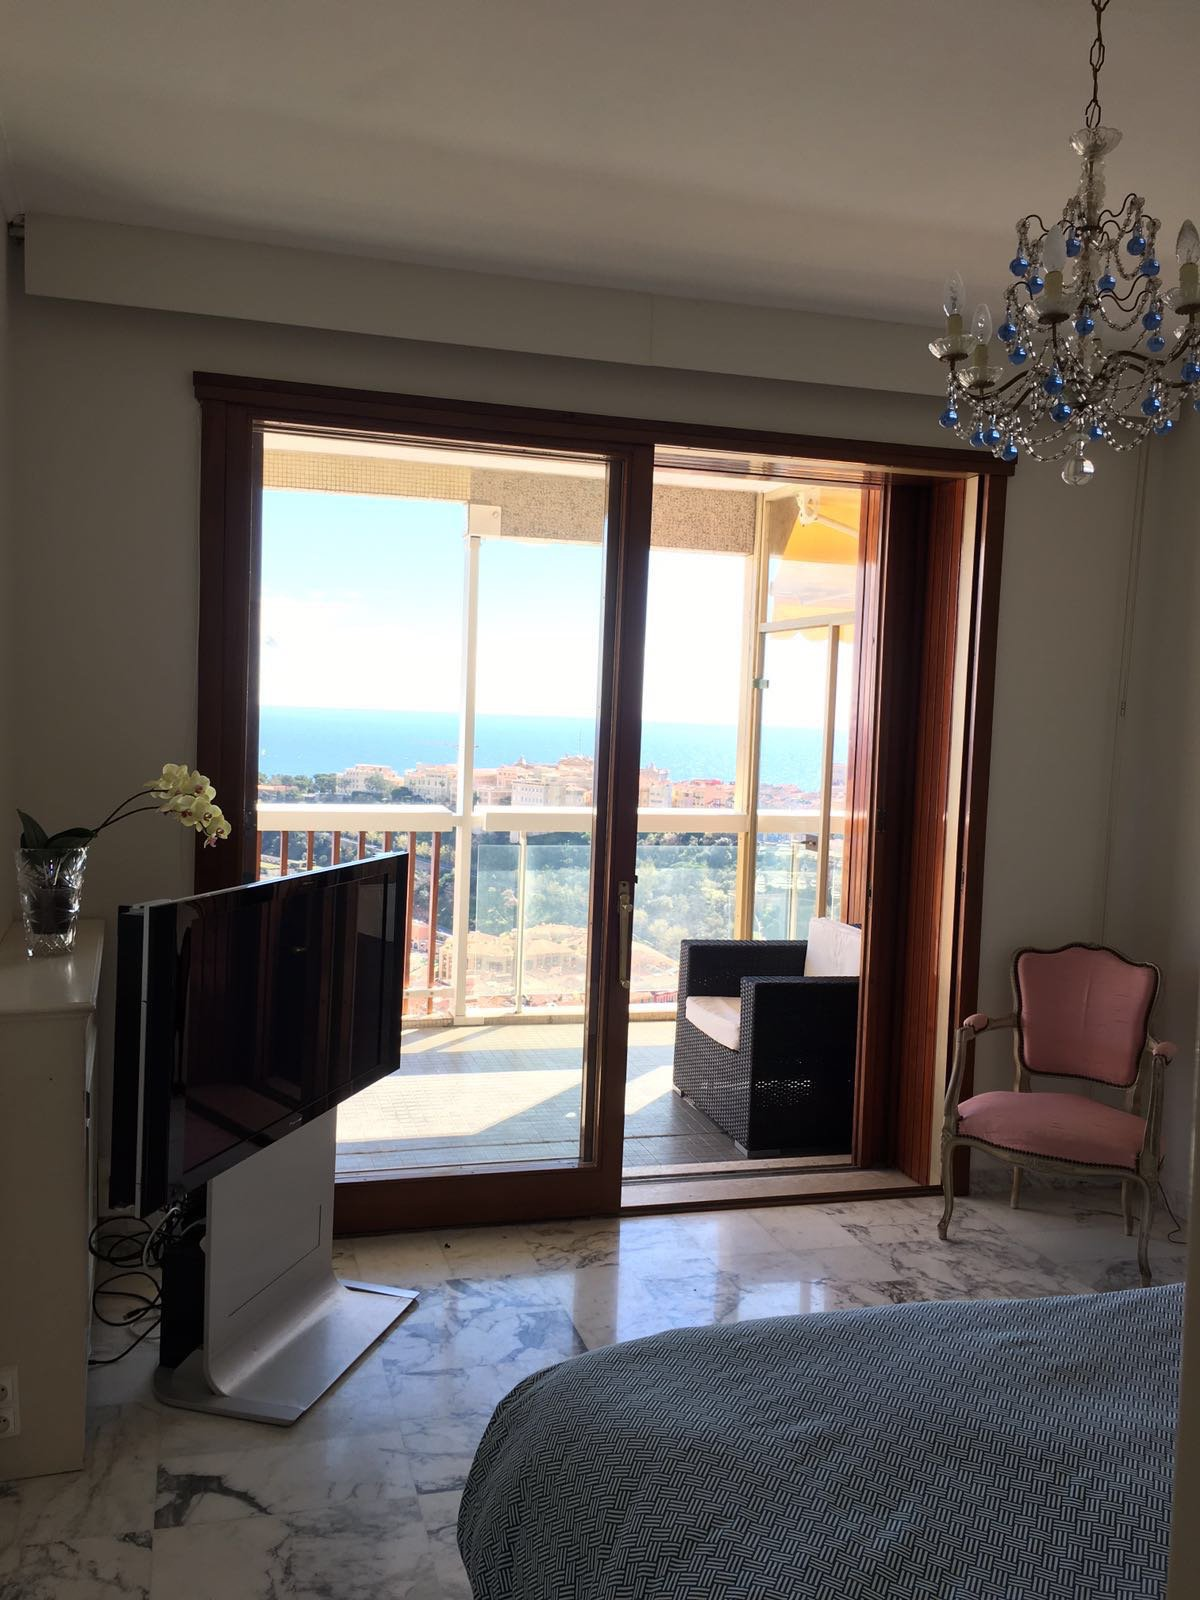 4 Bedroom Apartment La Colle